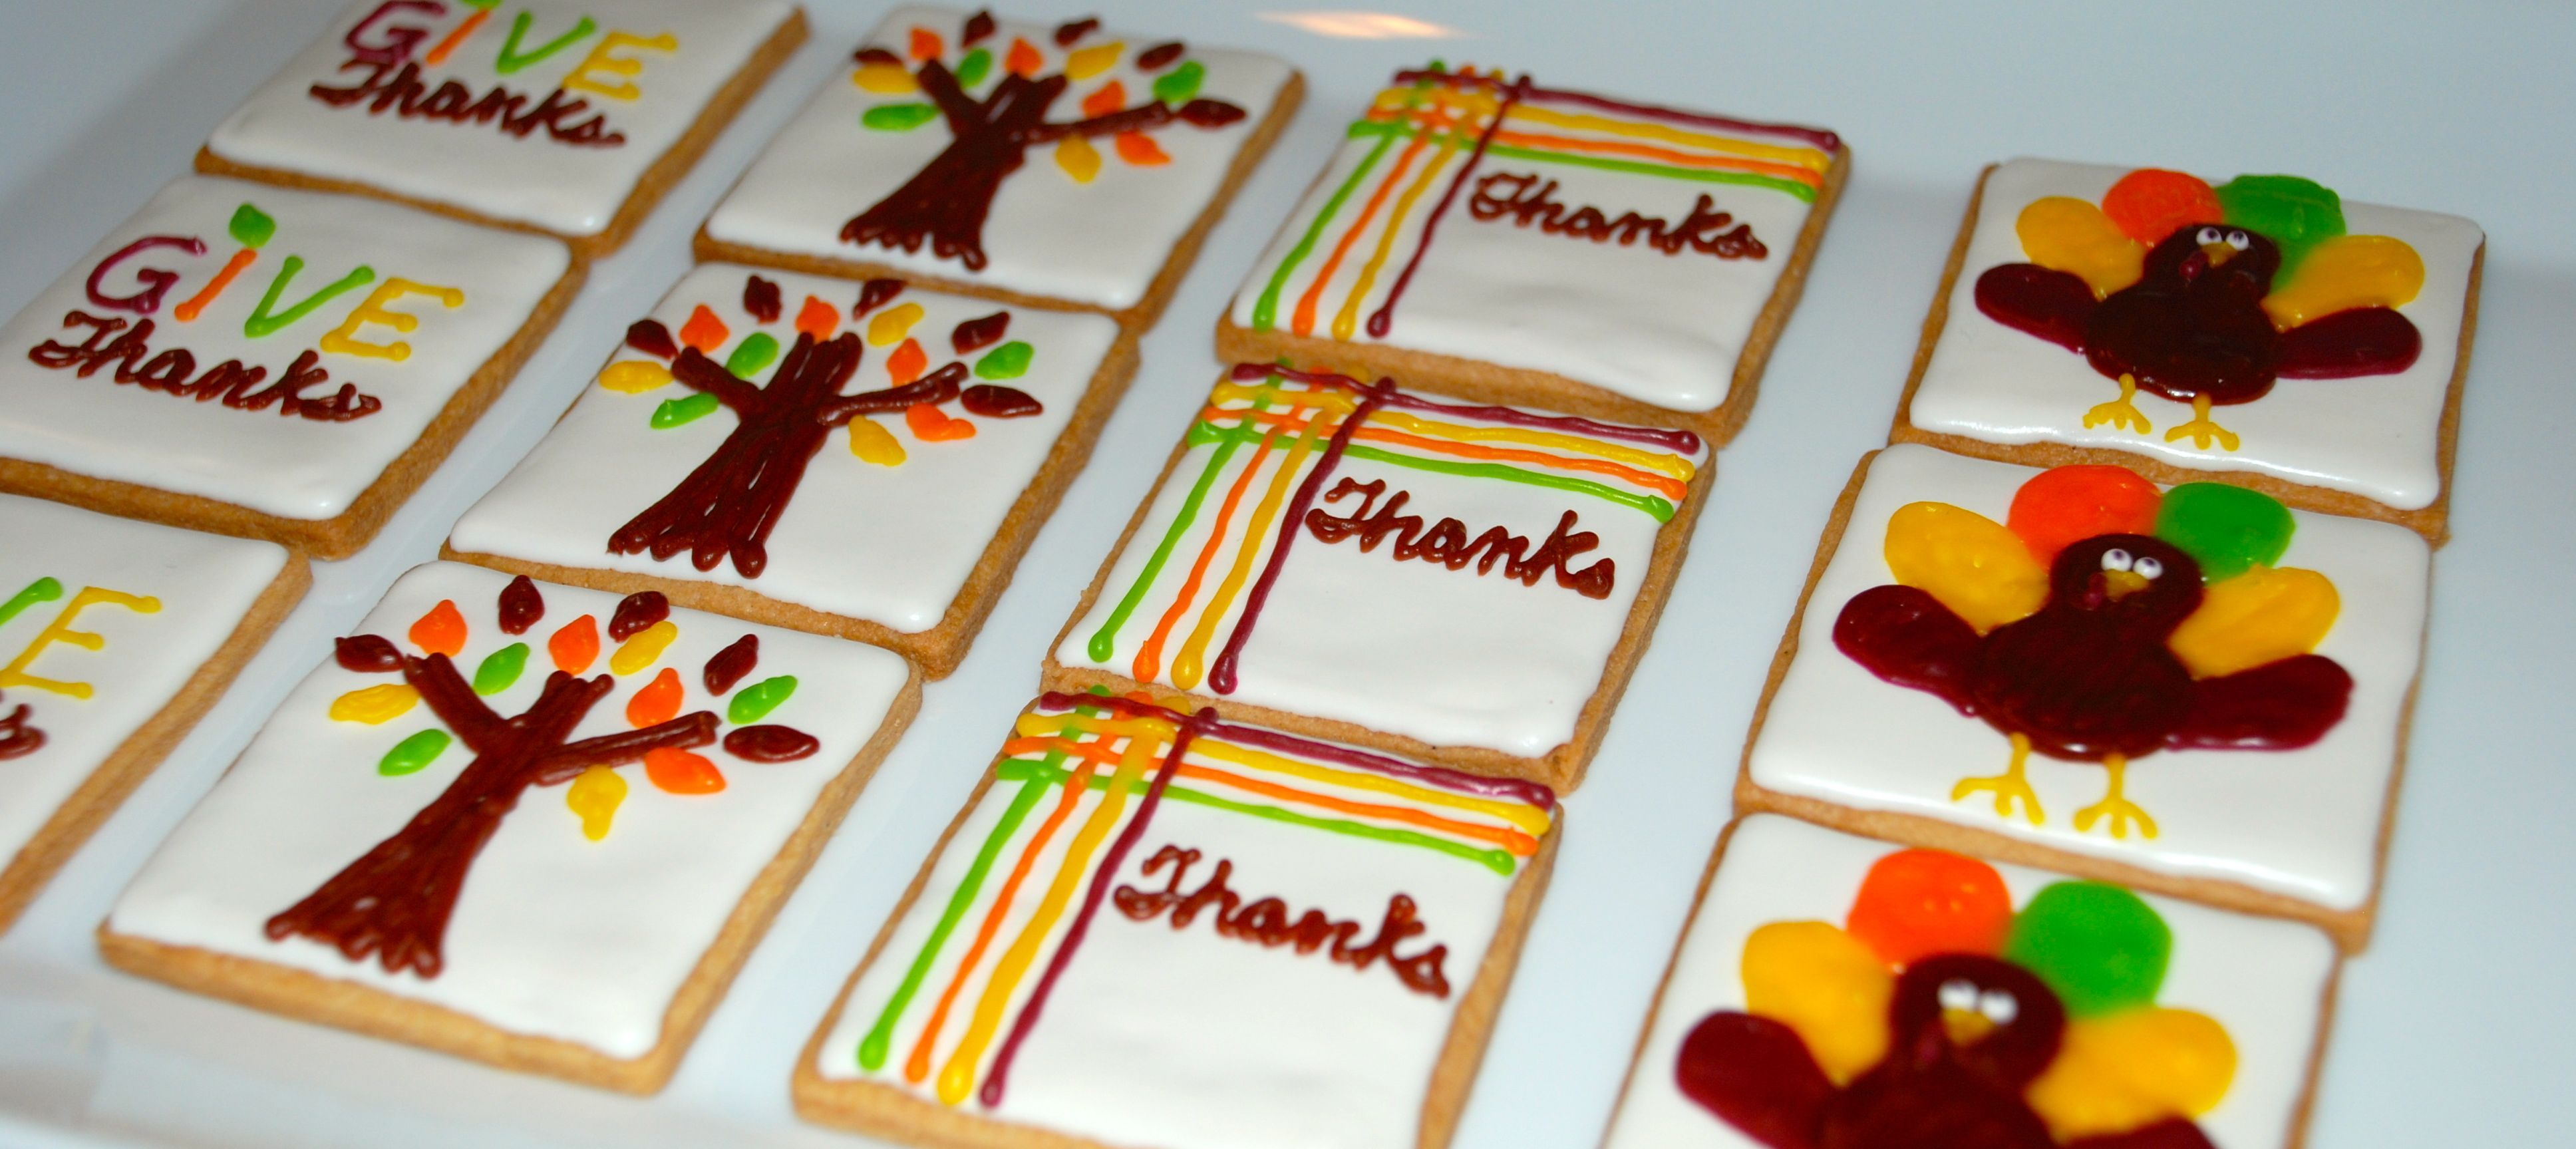 Cute cookies for Thanksgiving